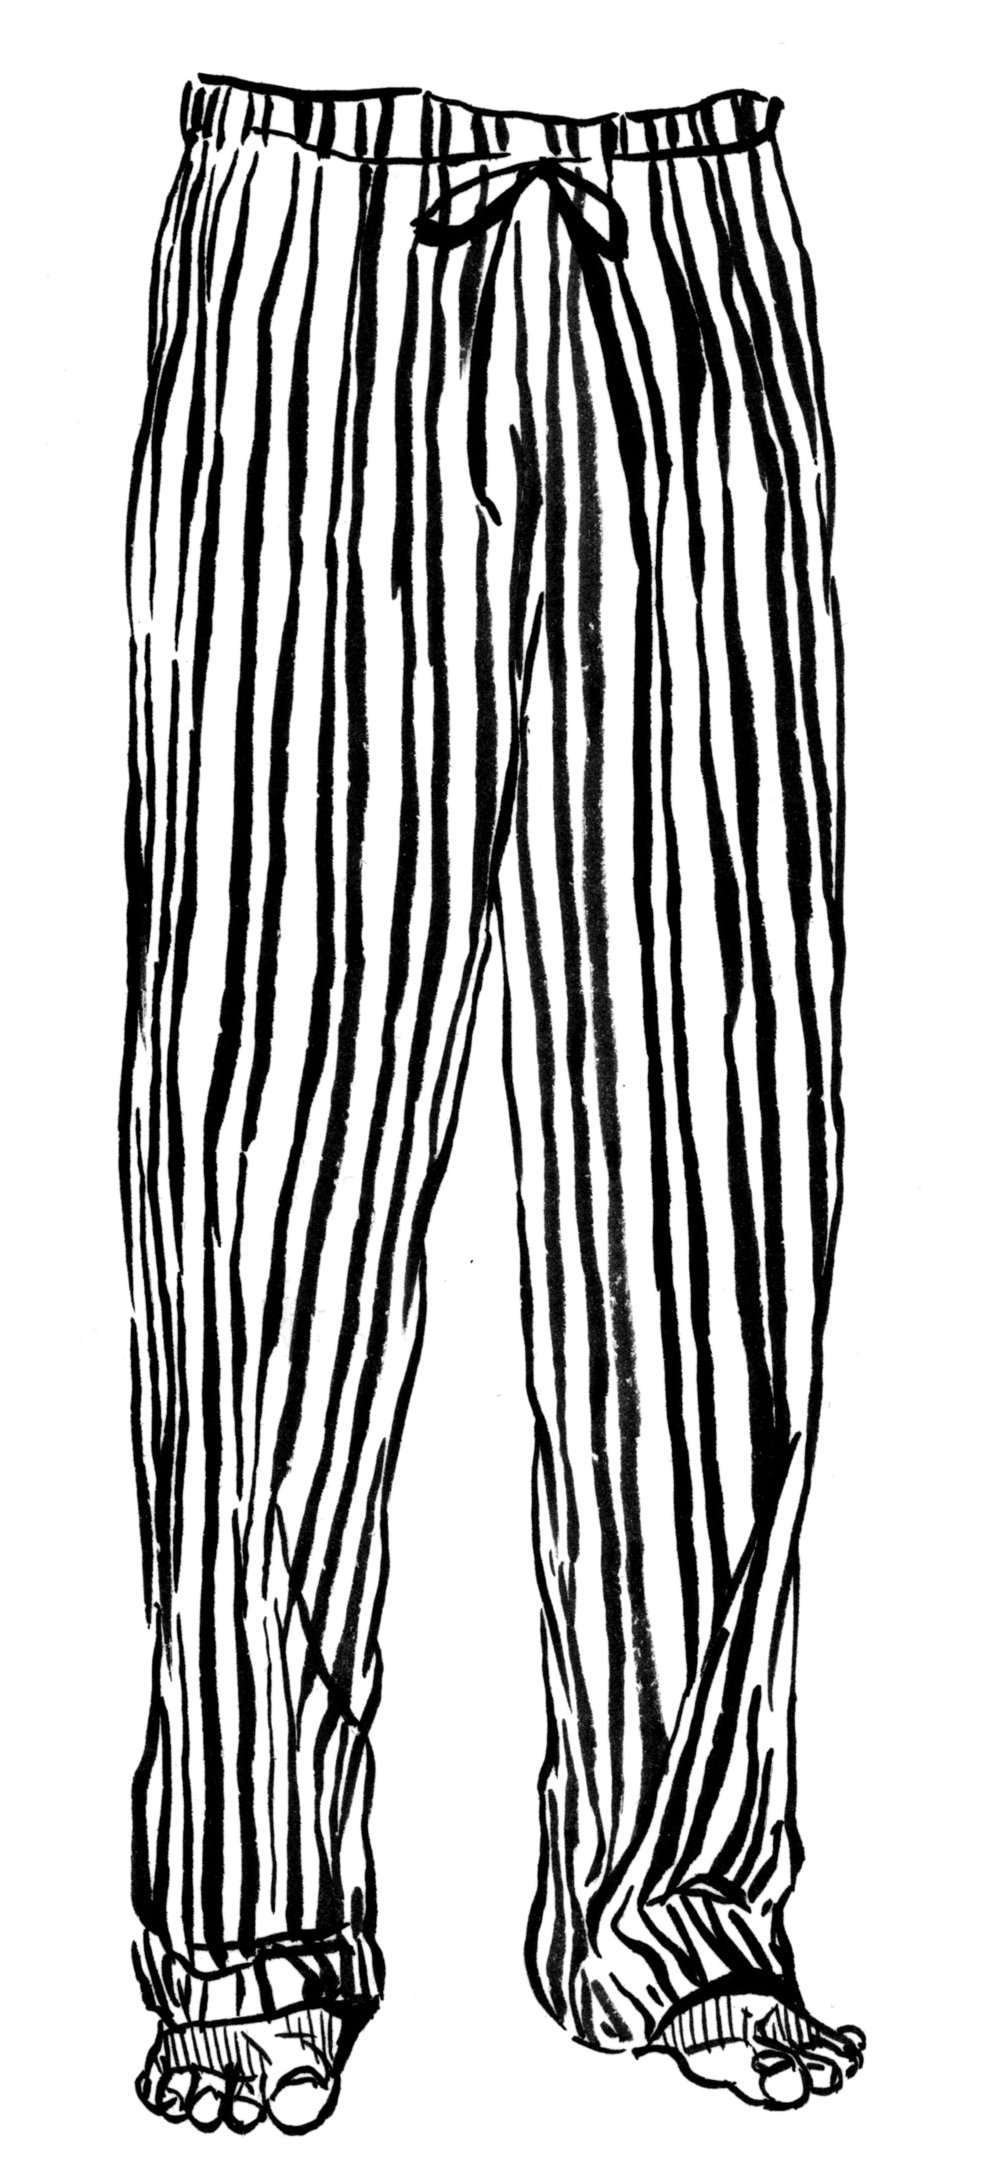 Pajamas for University of Depaul Chicago Sleep Study, Ink 2017